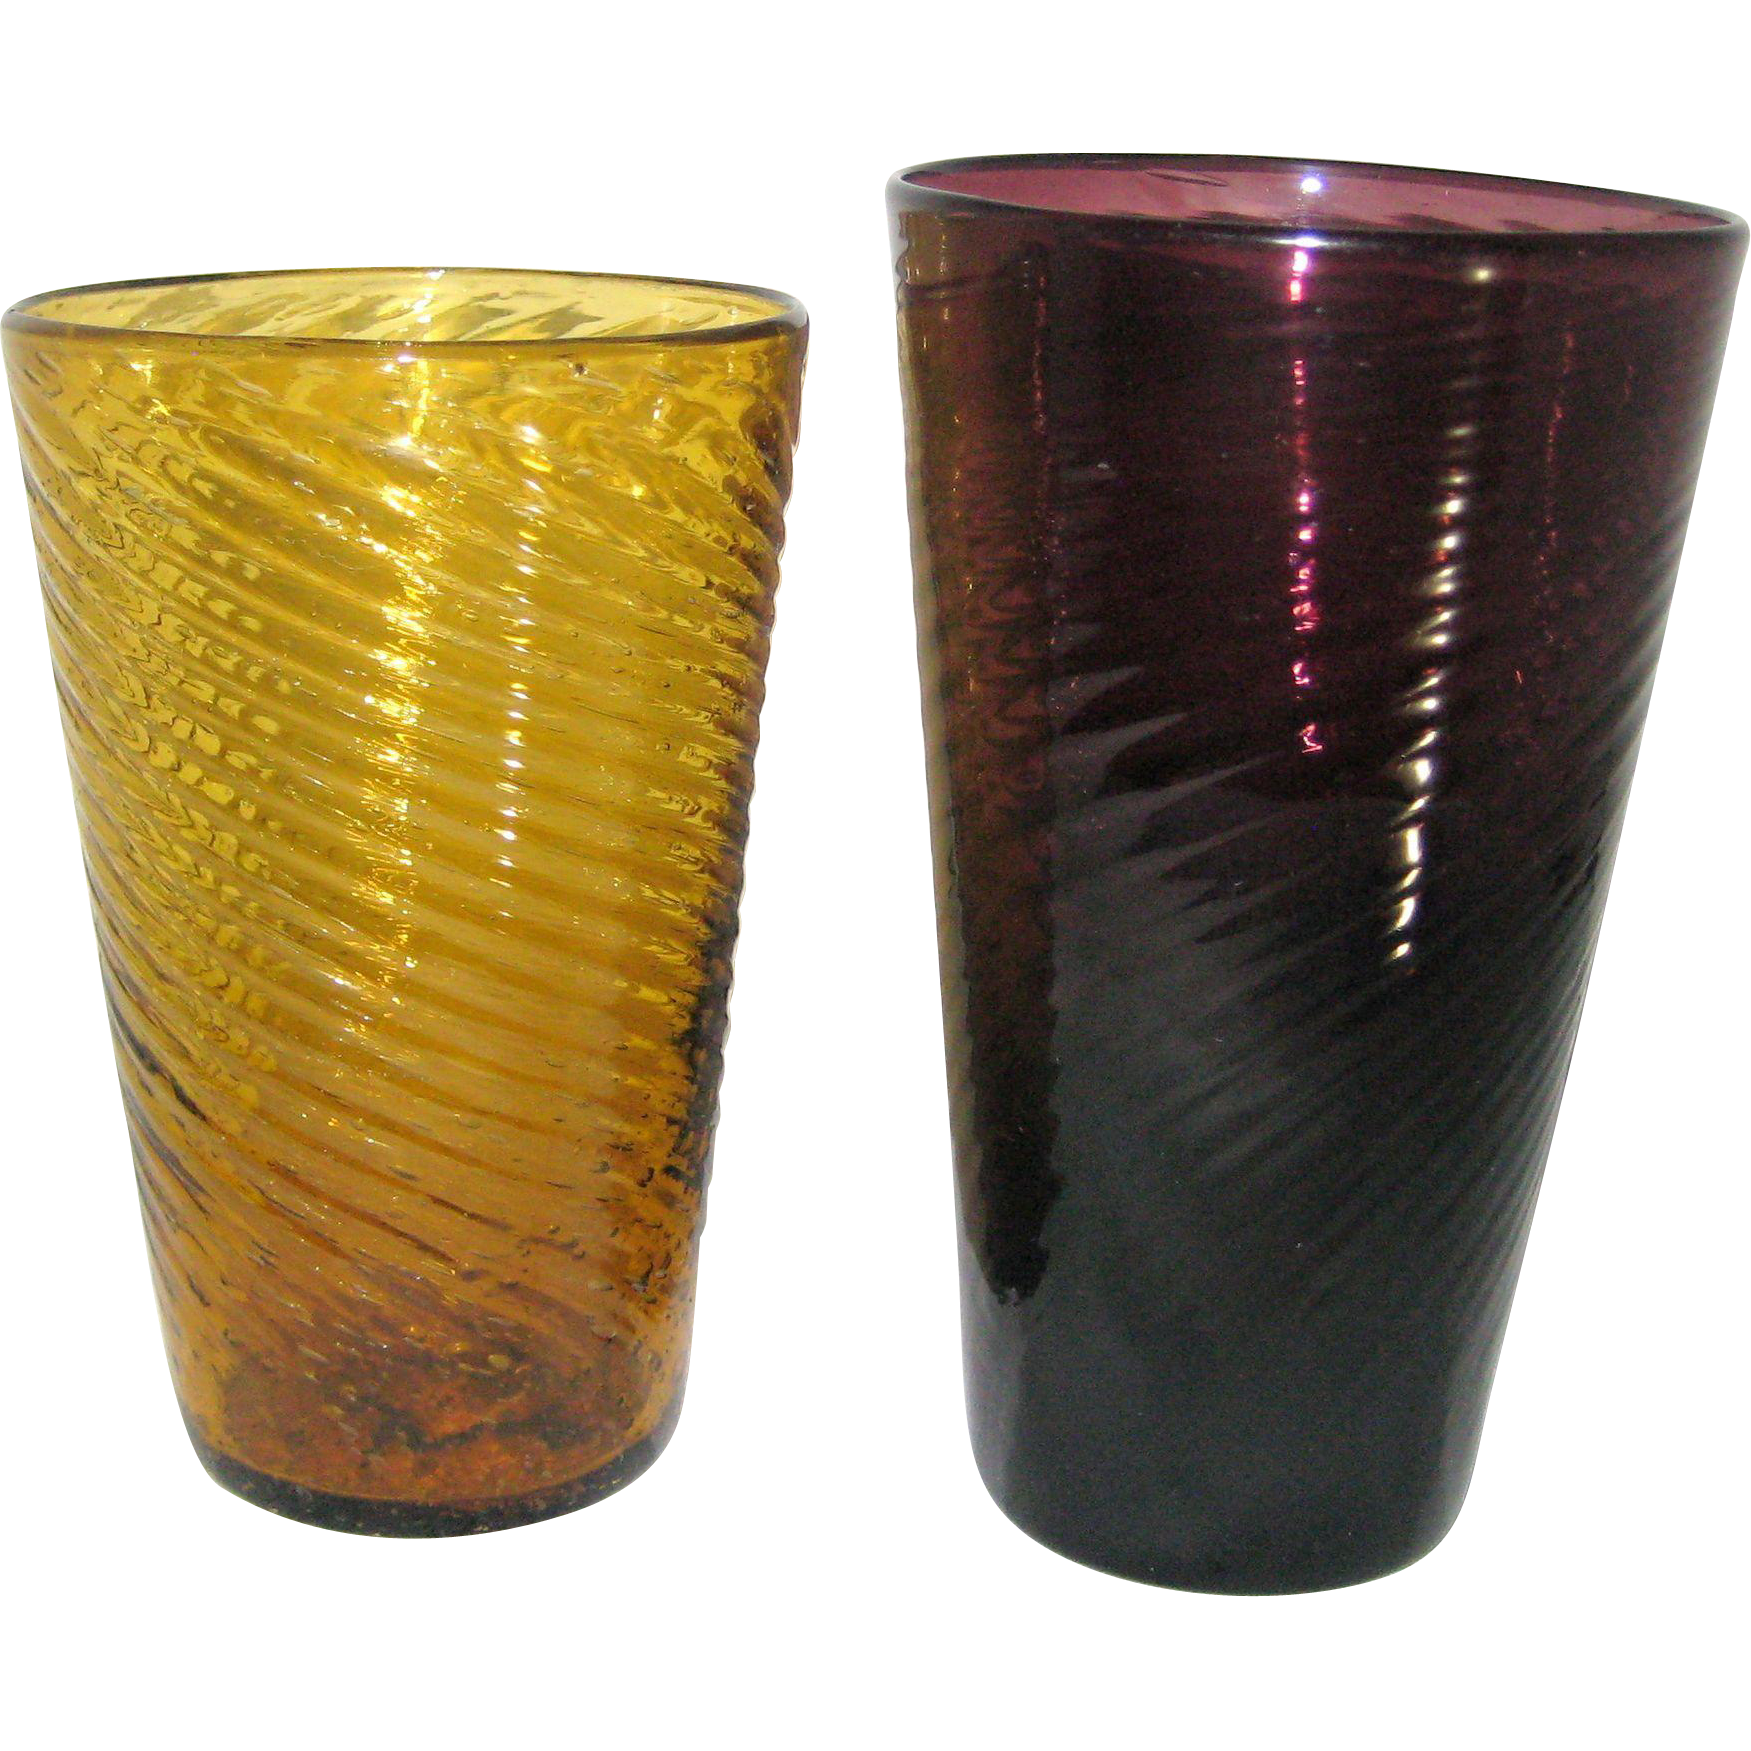 Two Mexican Hand Blown Swirled Bubble Glass Tumblers - Amber and Amethyst Colored